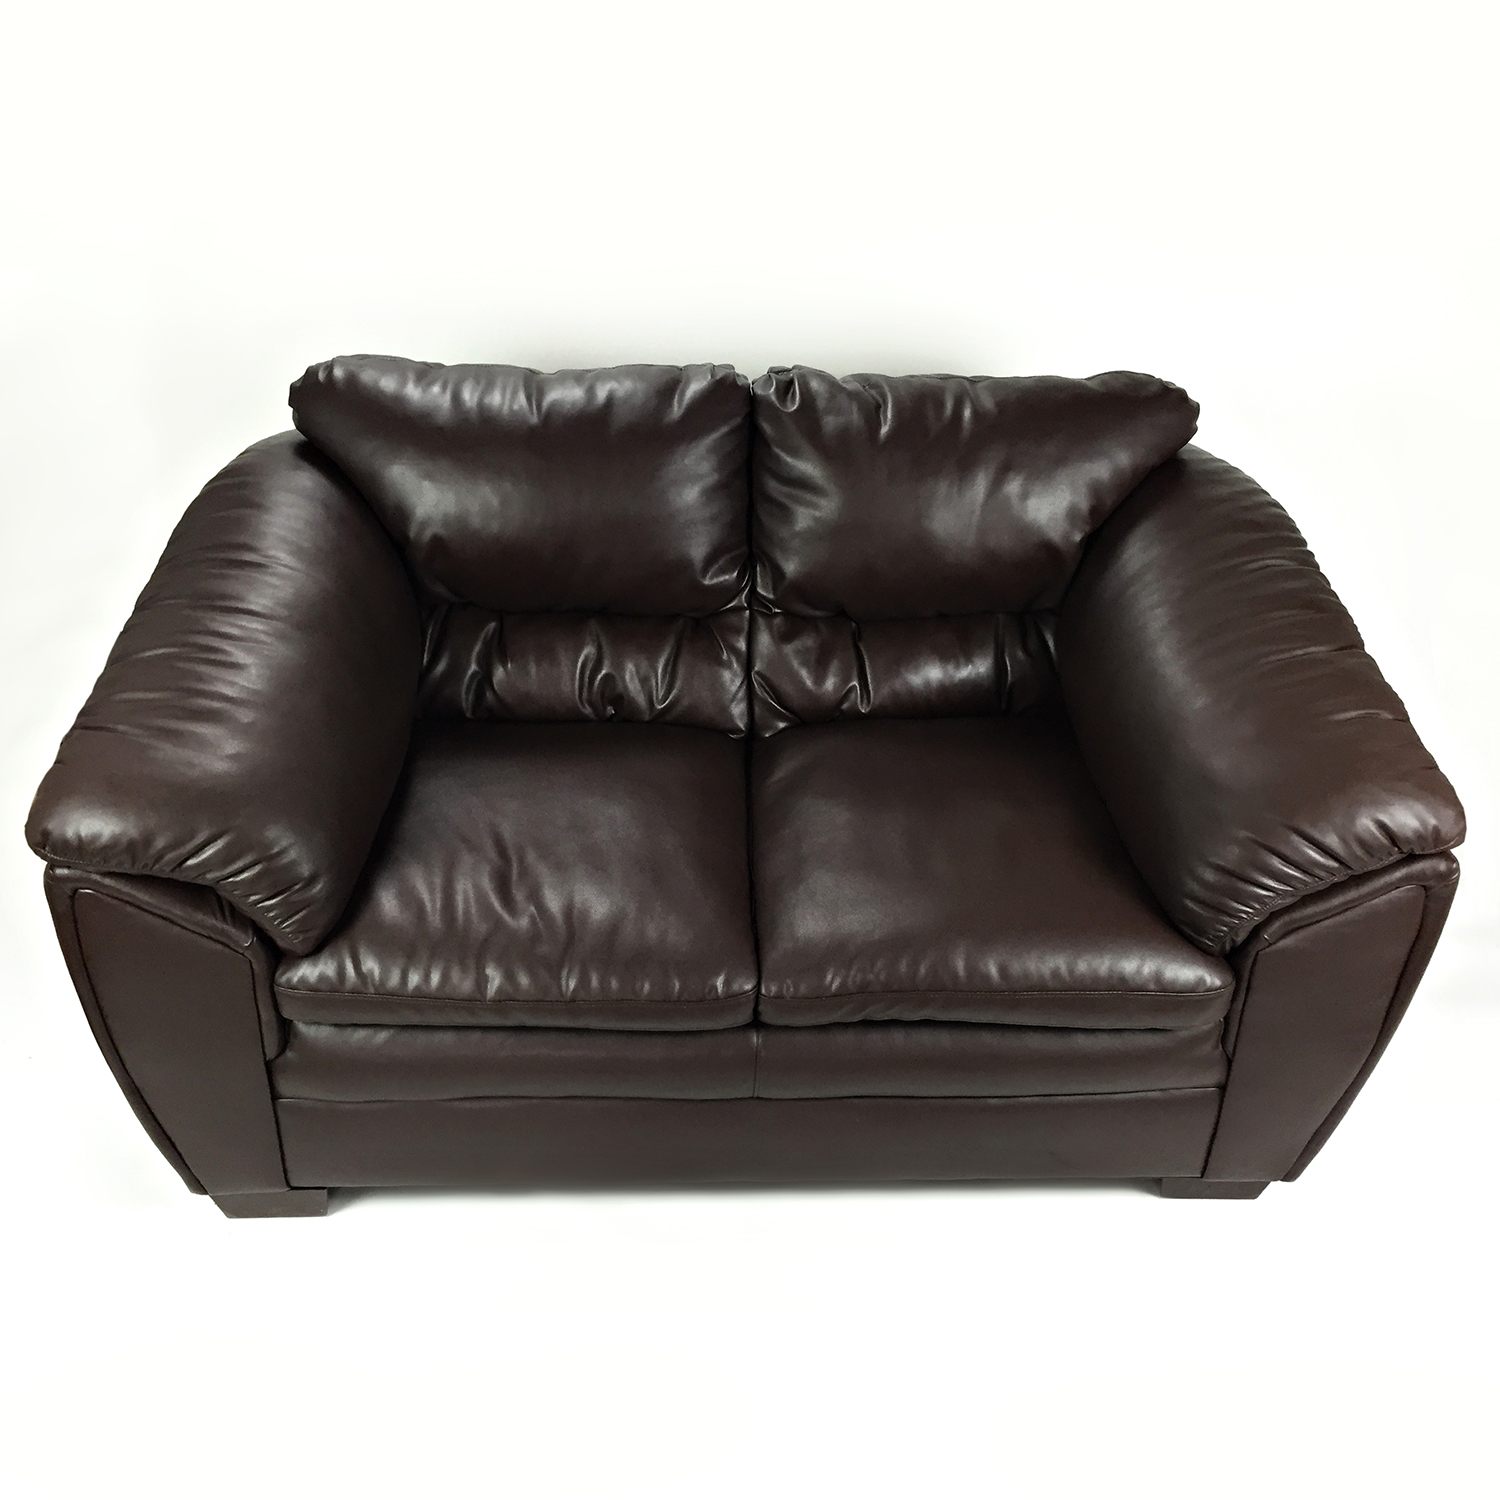 buy Brown Faux Leather Love Seat Bobs Furniture Sofas